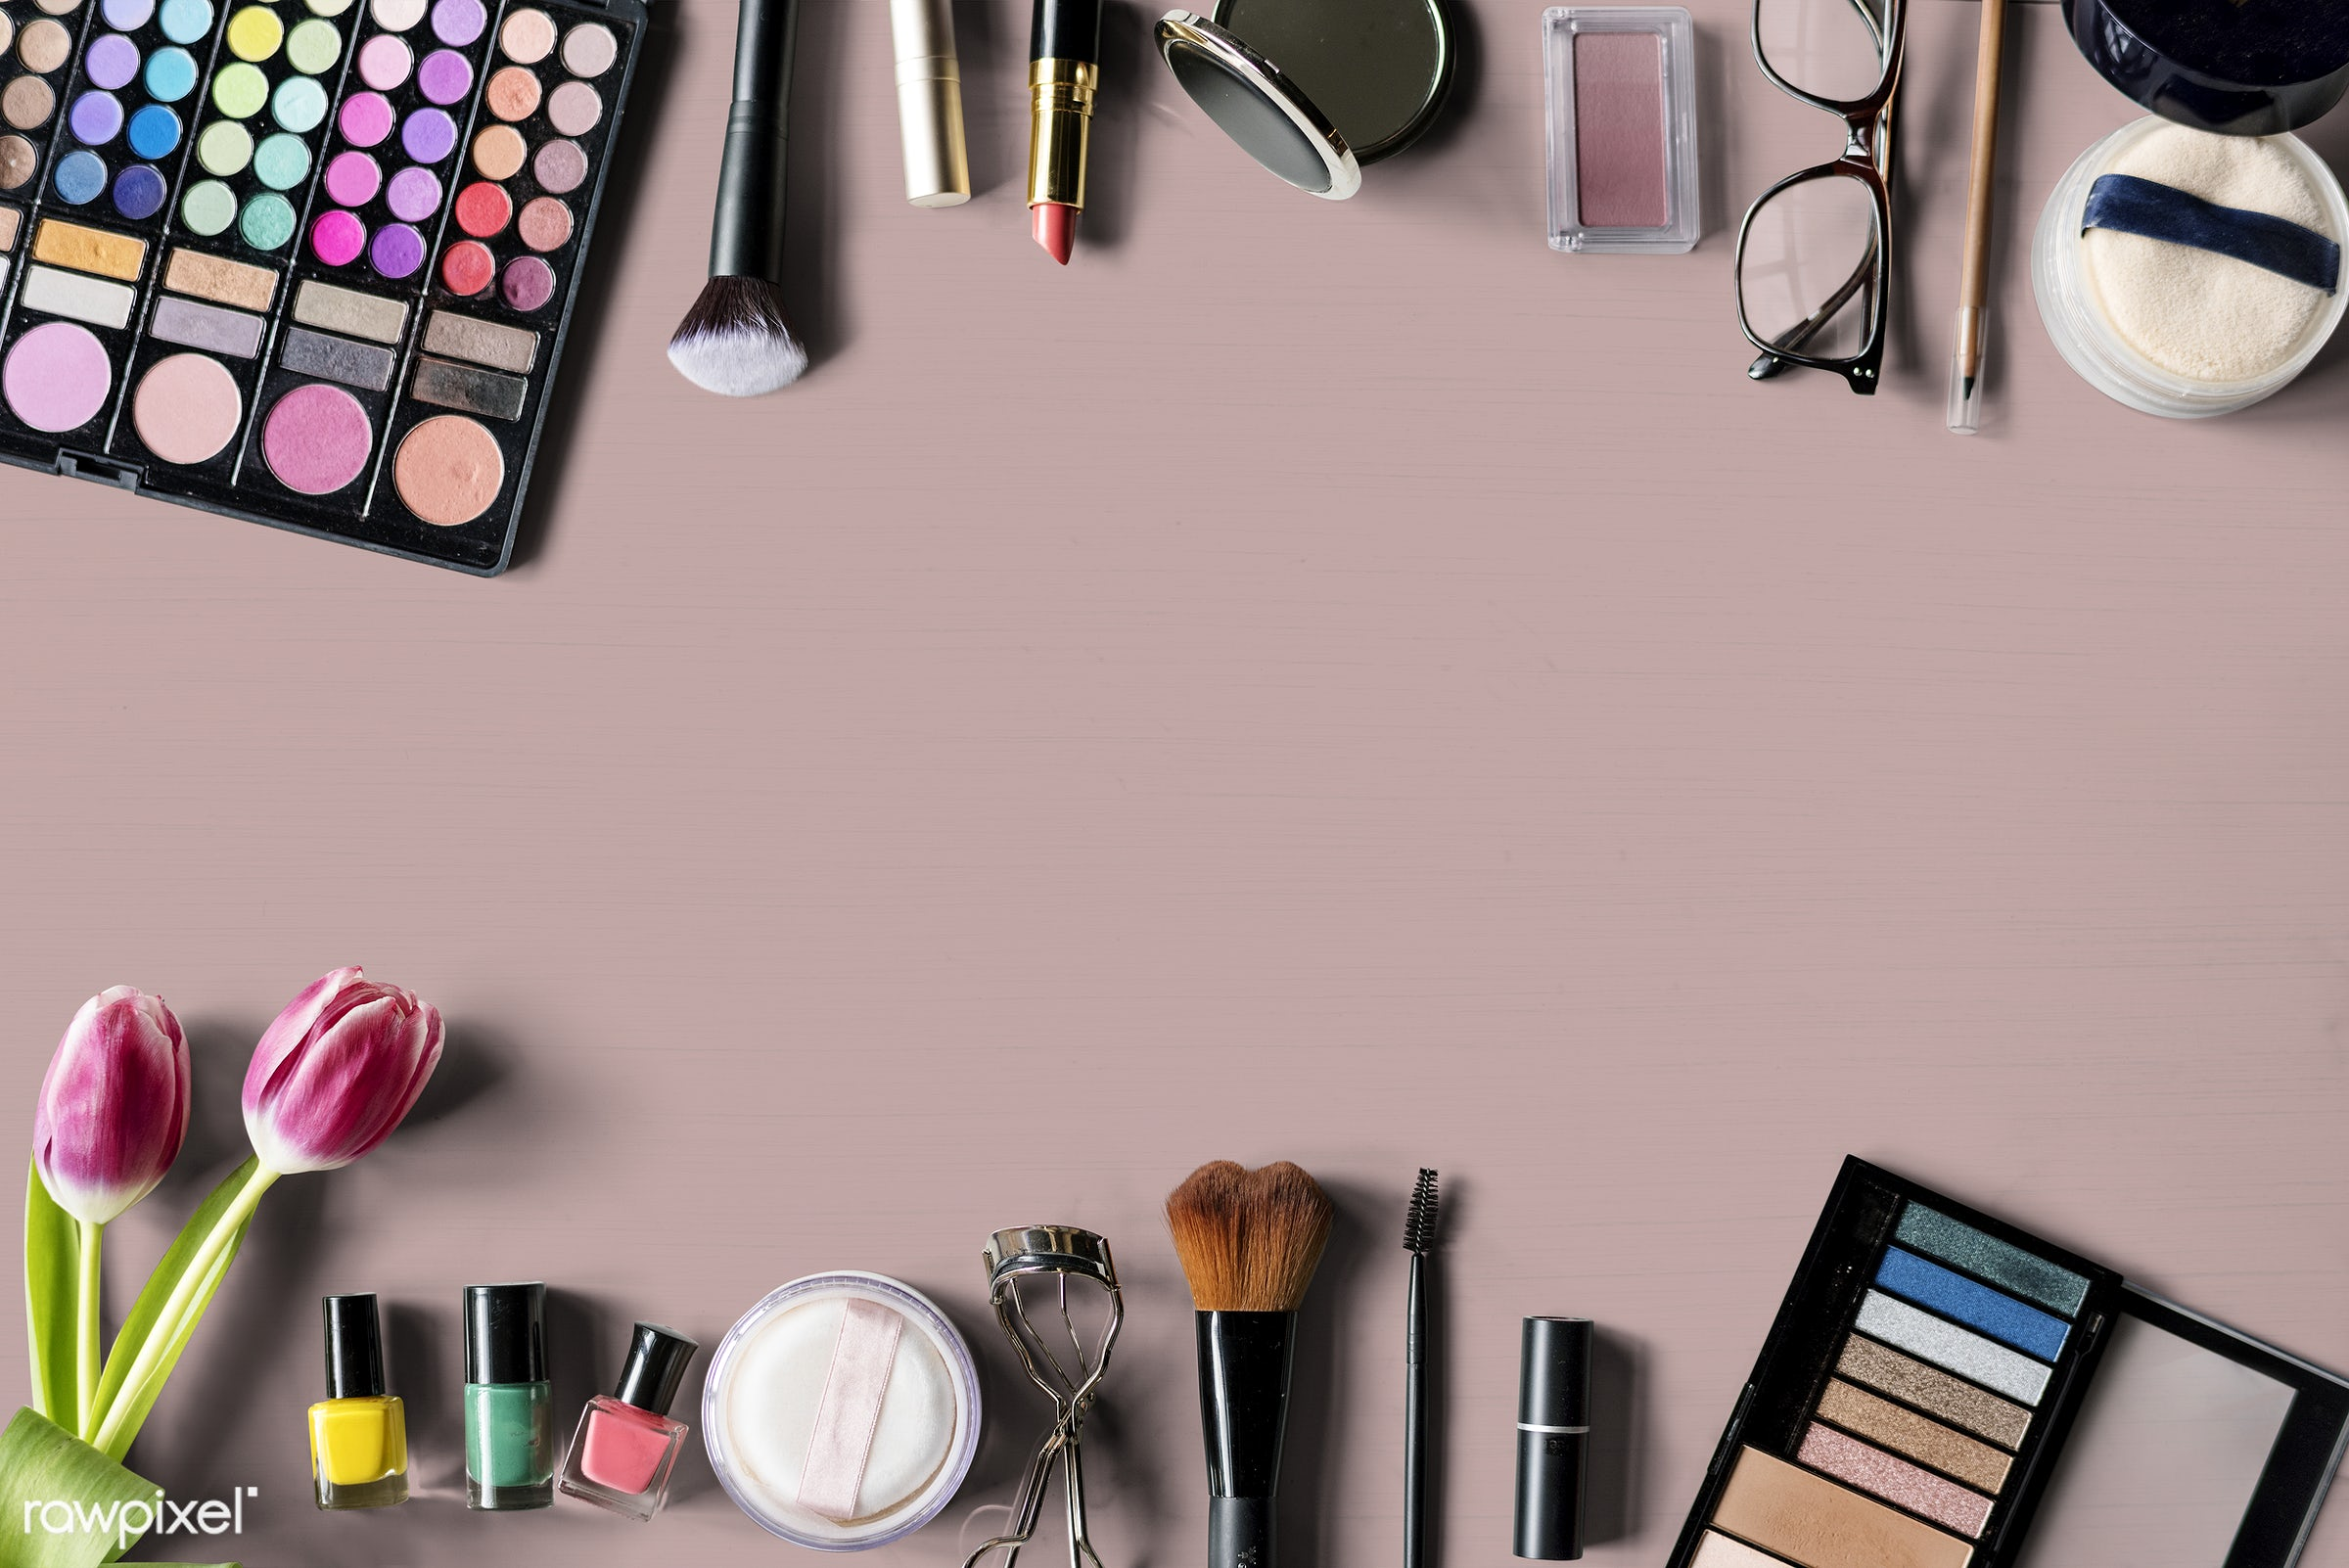 Ariel view of make up products - cosmetic, makeup, fashion, attach, attached, beauty, blush, brushes, care, collection,...